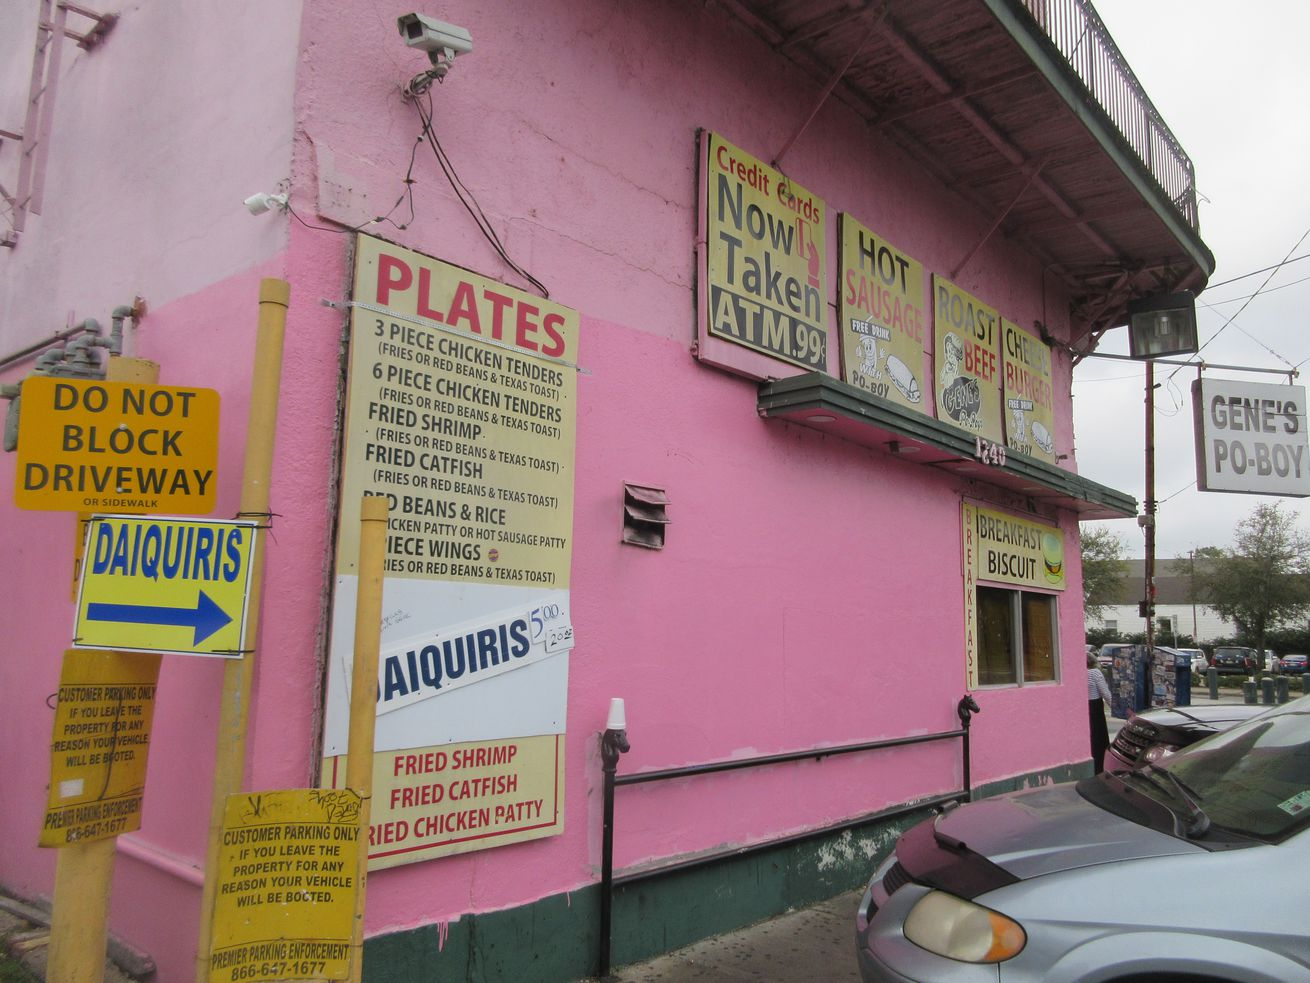 Several yellow signs advertising daiquiris and plate lunches are affixed to a bright-pink building.